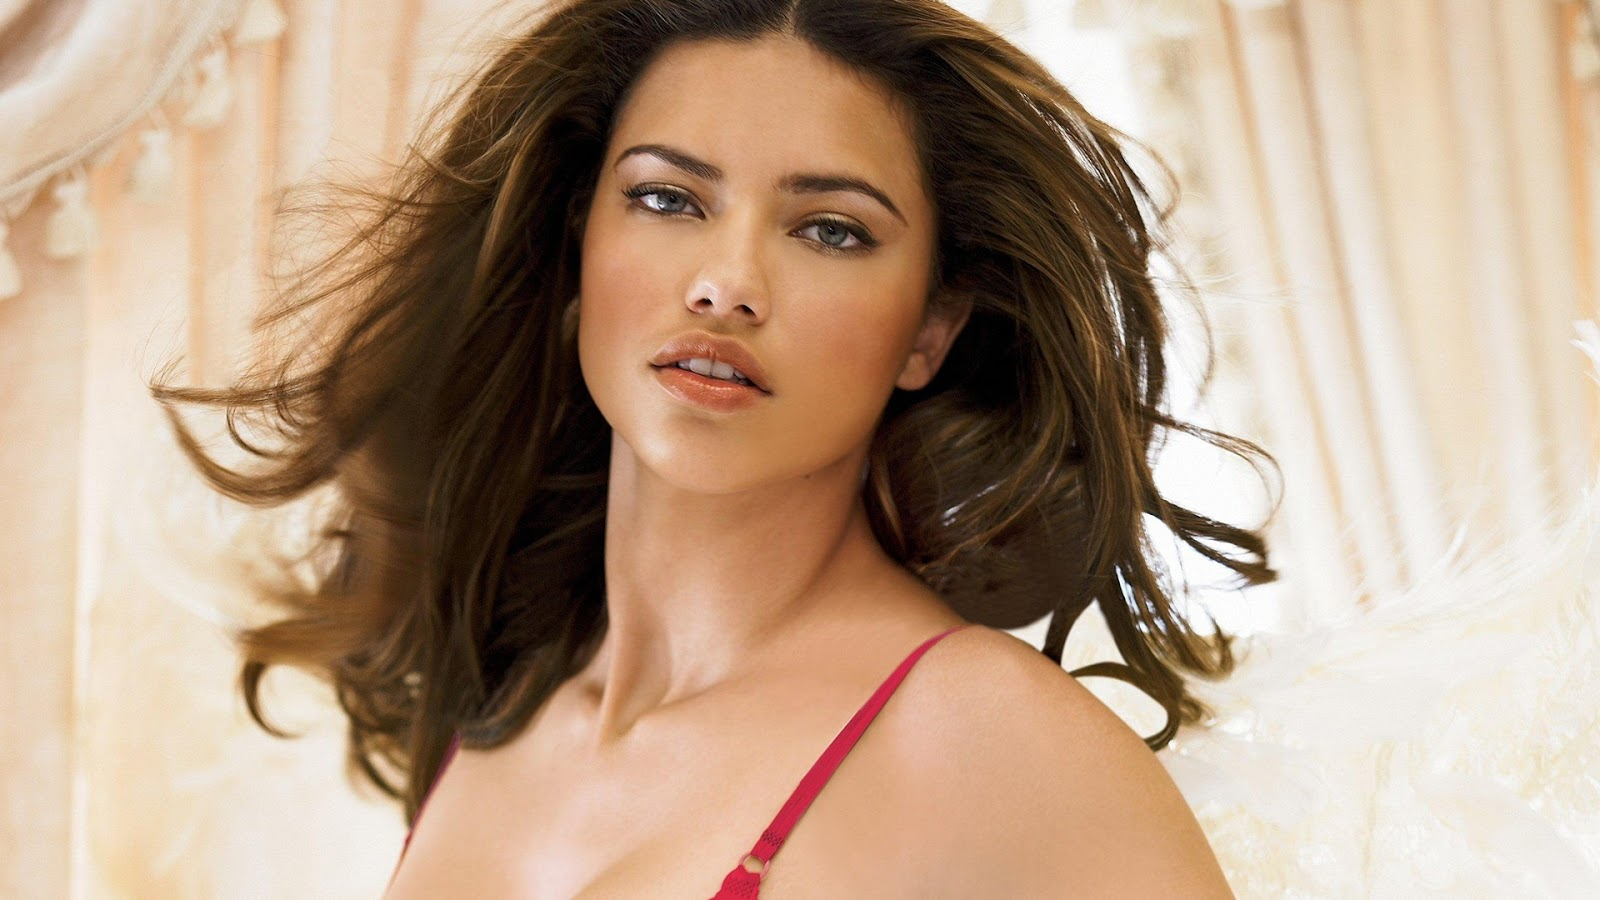 Adriana Lima Secret Model Wallpaper